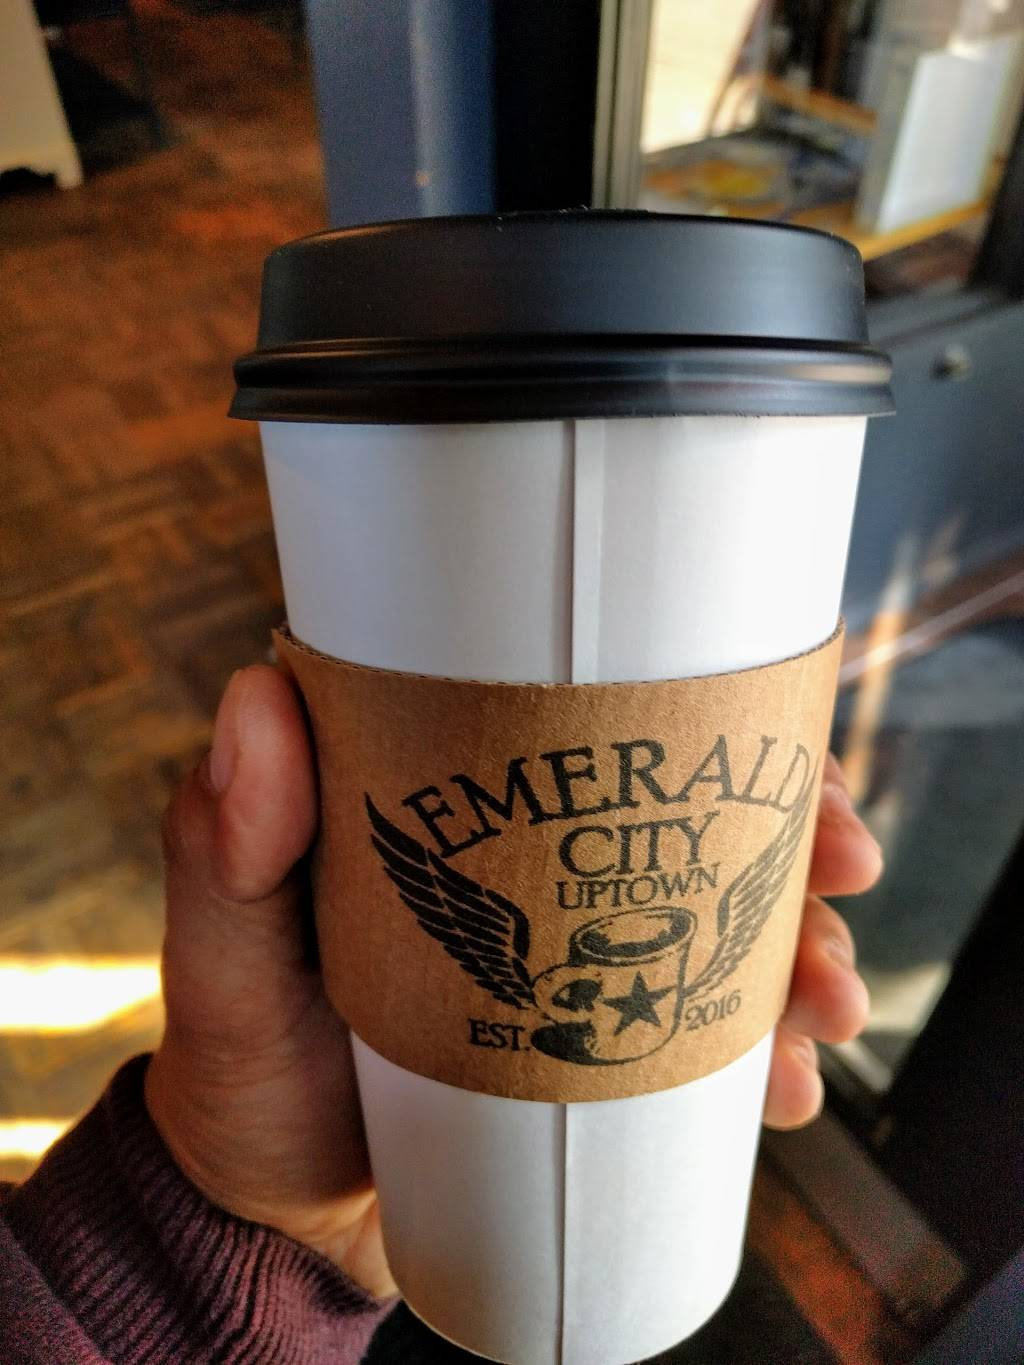 Emerald City Uptown   cafe   1224 W Wilson Ave, Chicago, IL 60640, USA   7738573041 OR +1 773-857-3041